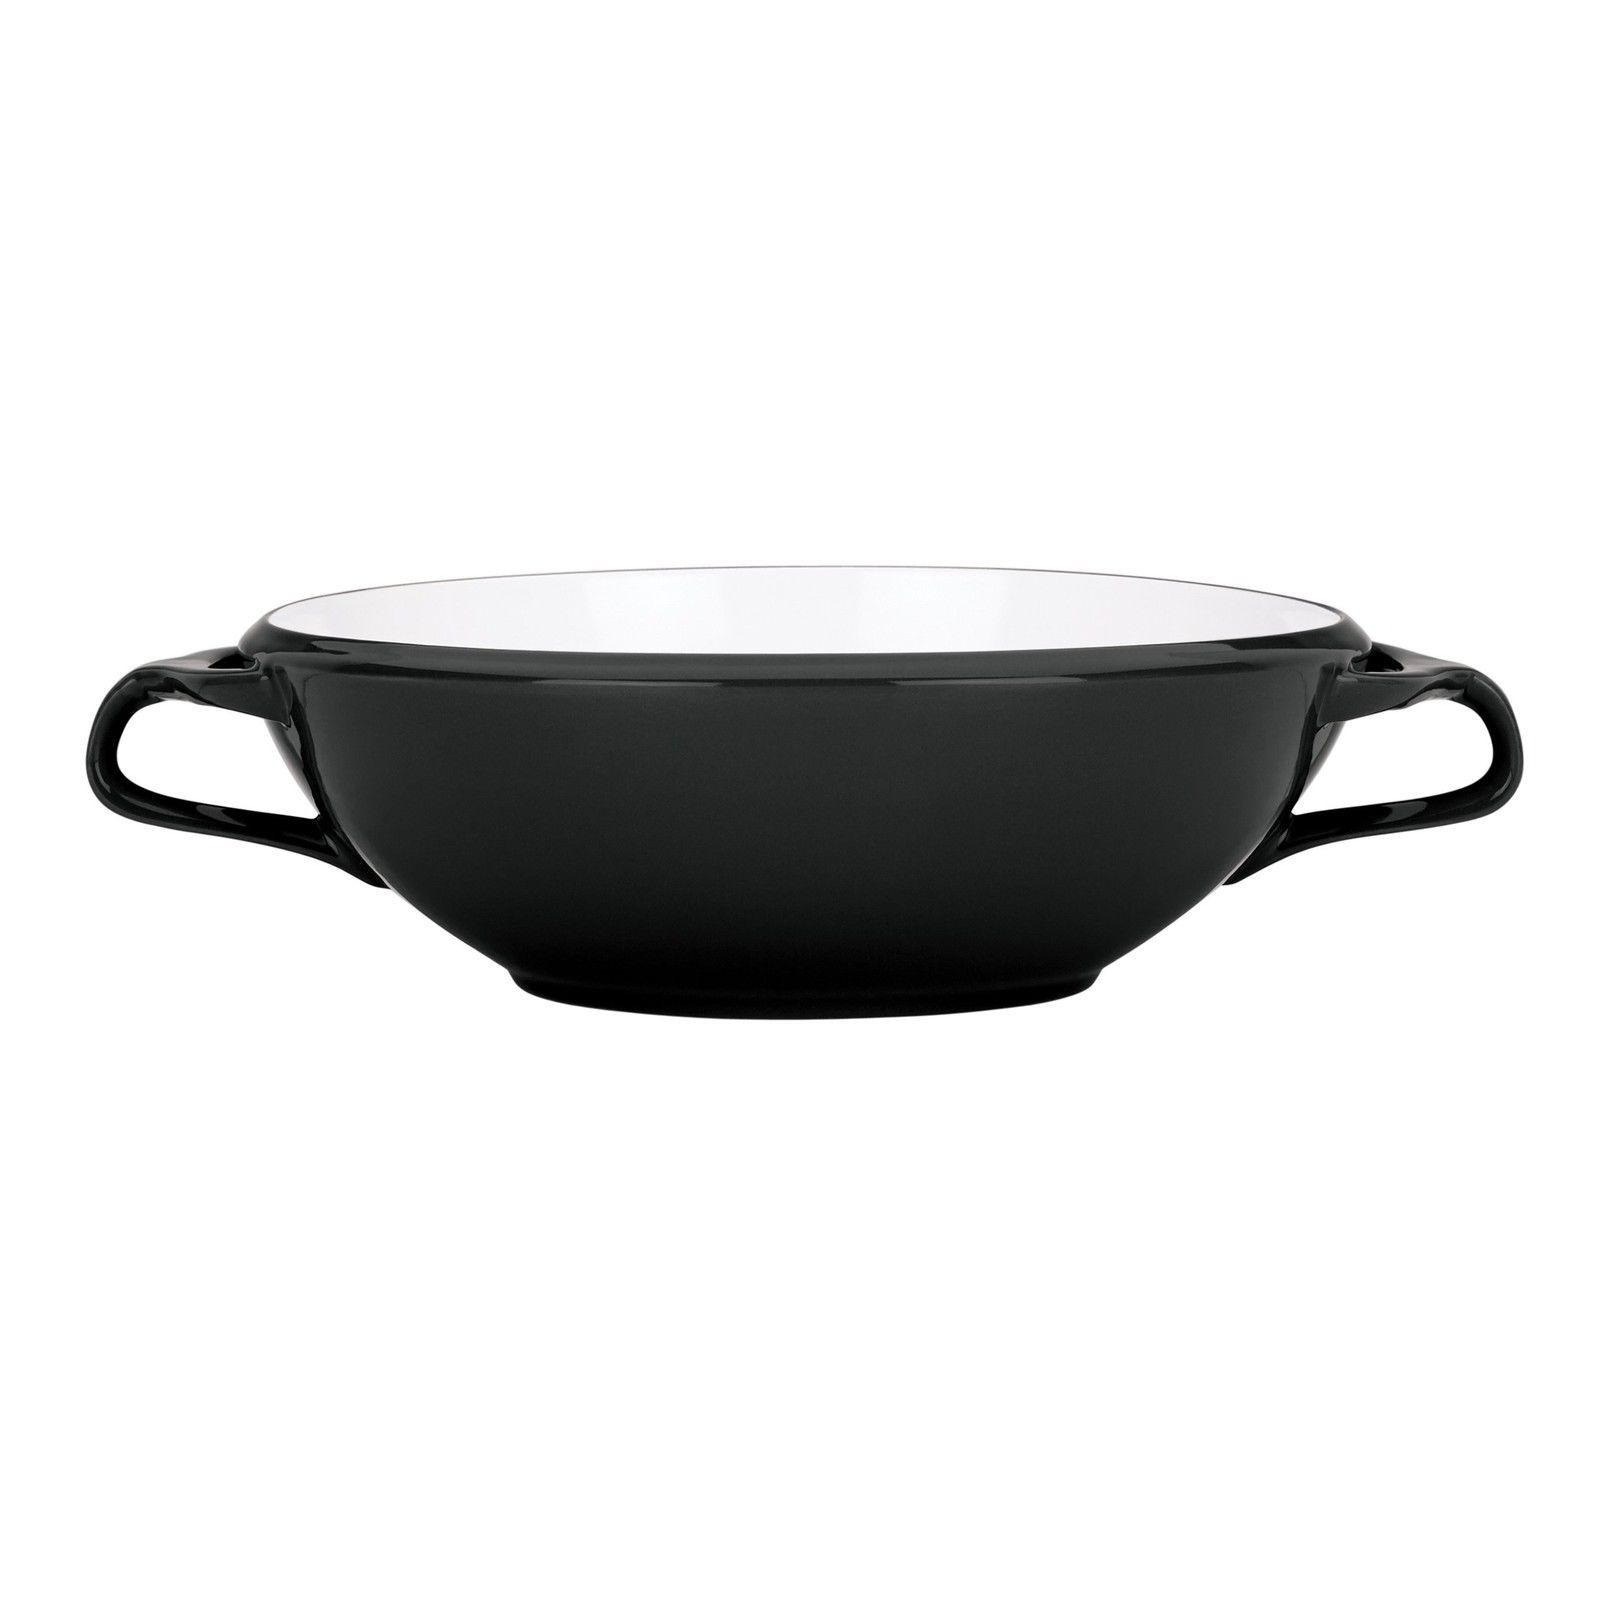 Dansk Kobenstyle Handeled Serving Bowl, Black